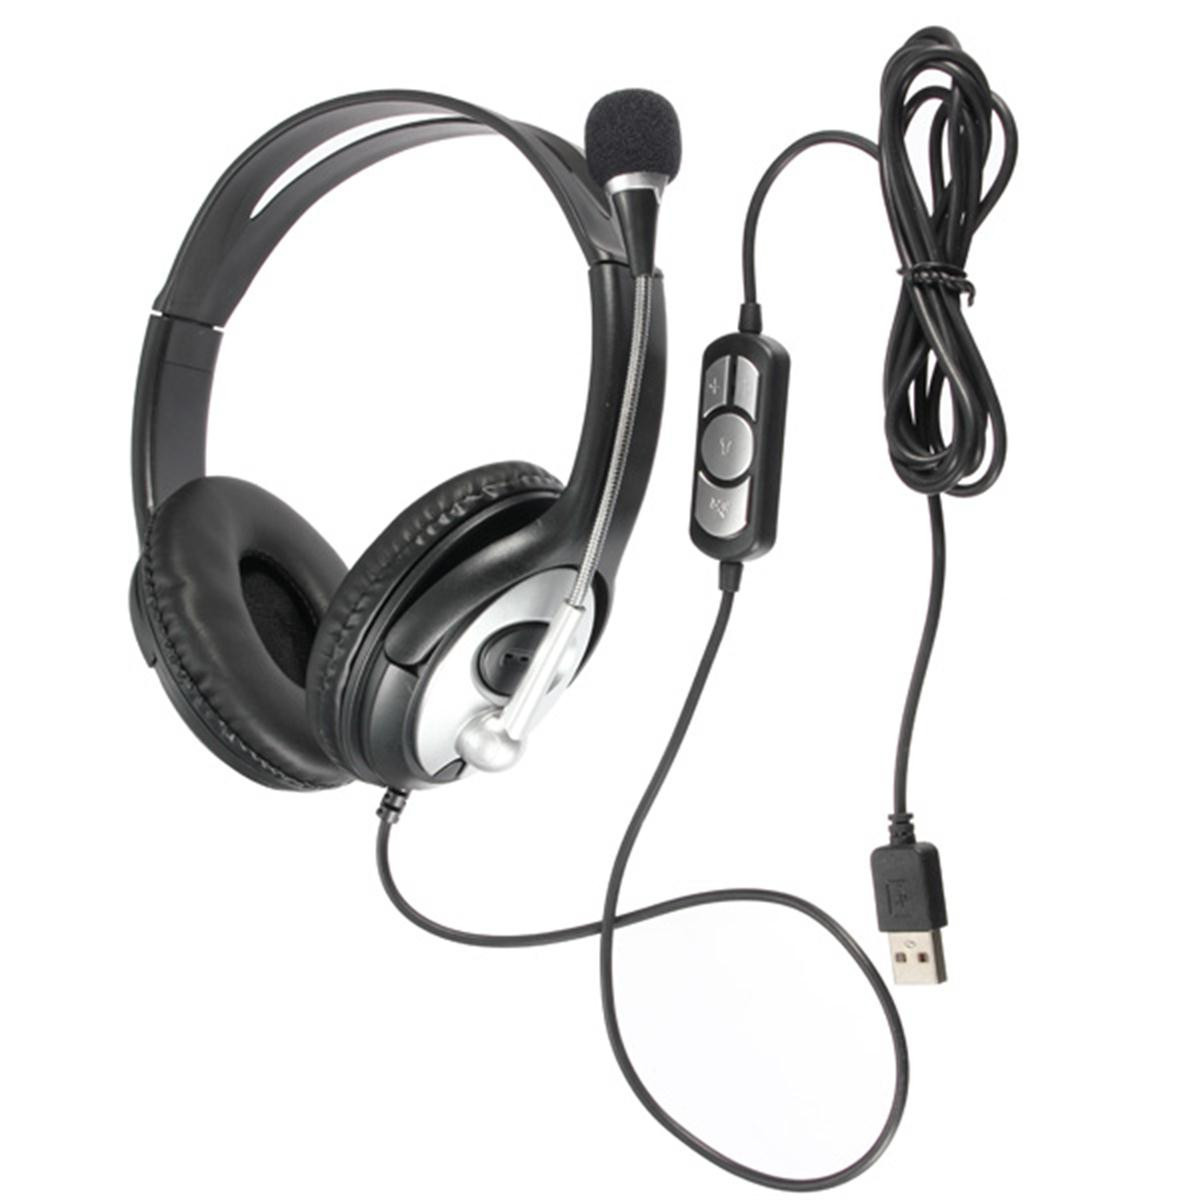 Practical USB Stereo Headphone <font><b>Gaming</b></font> Headset <font><b>Earphone</b></font> <font><b>with</b></font> <font><b>Microphone</b></font> for PC Laptop Notebook Music Gift image